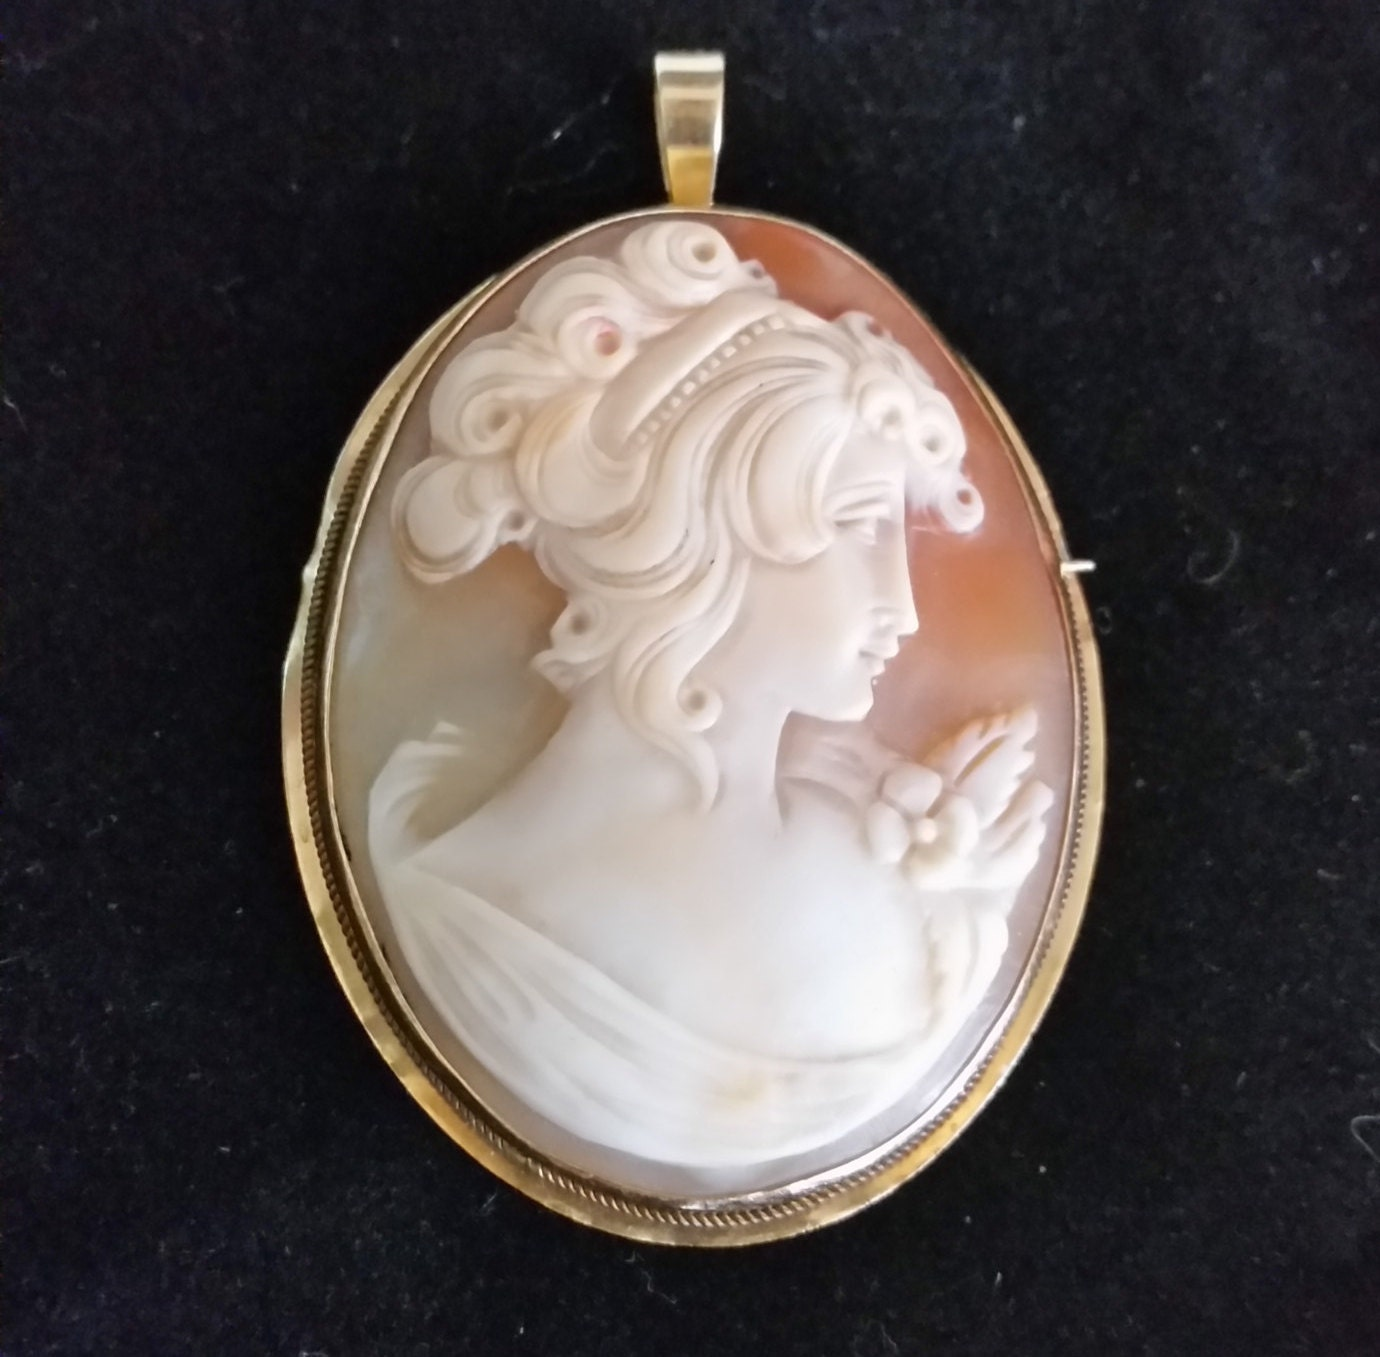 Custom Cameo Resin Pins Diy: Vintage Hand Carved Cameo Pendant/Brooch By YanisBoutique